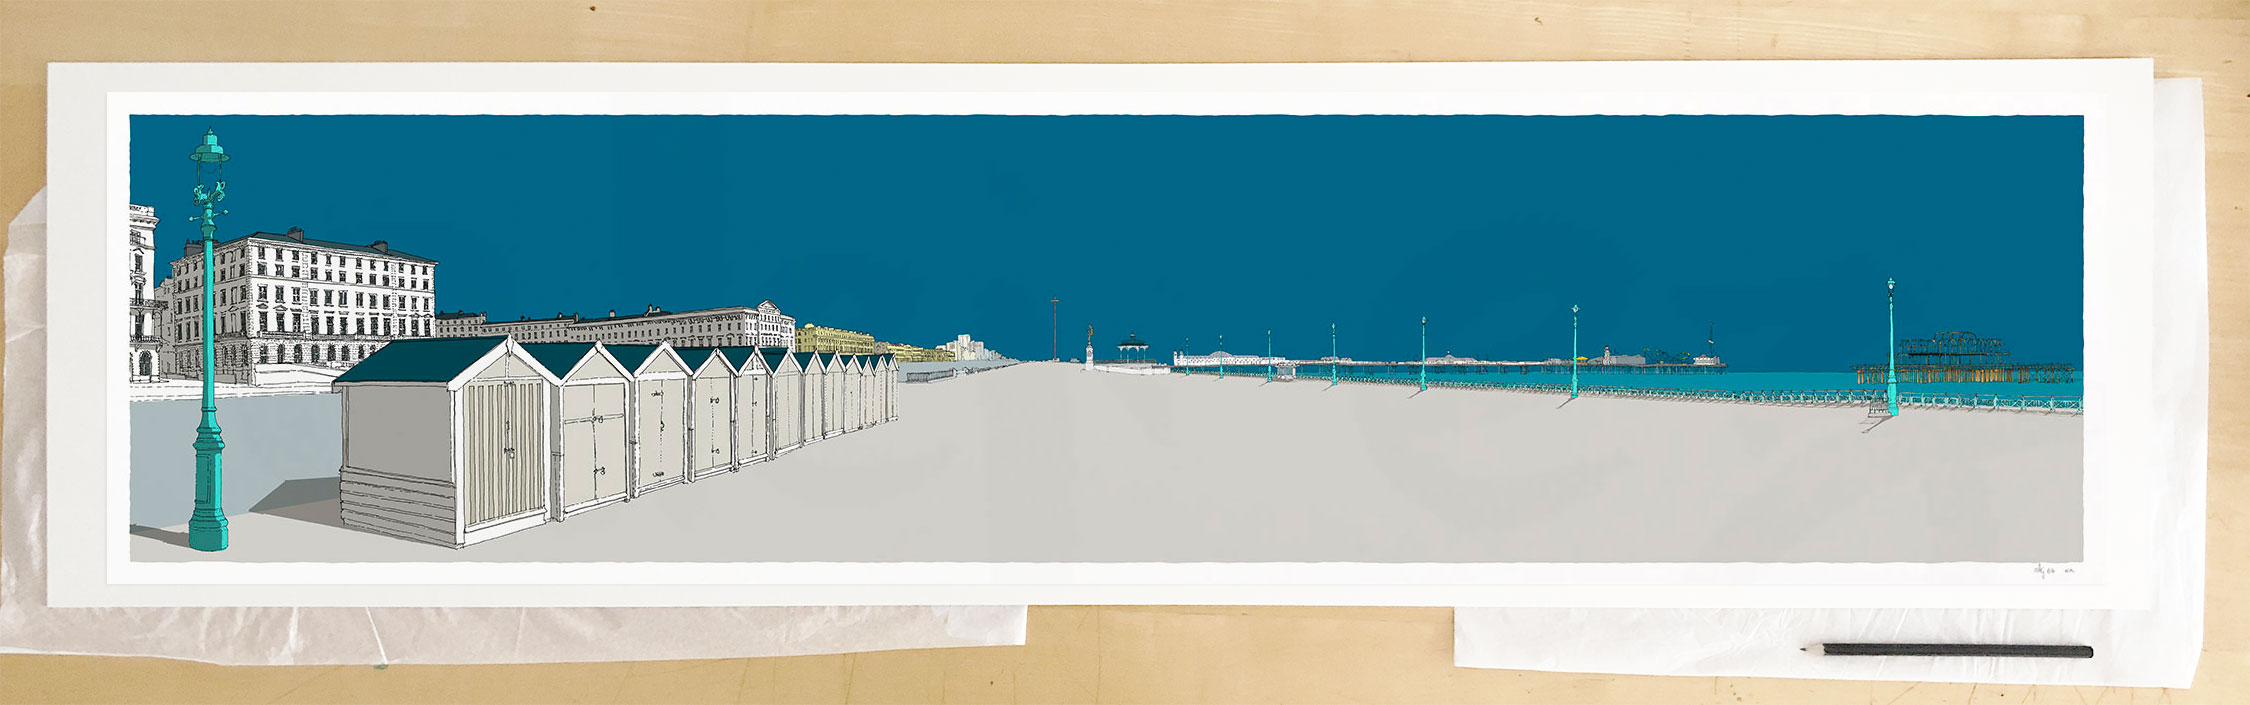 Fine art print by UK artist alej ez titled Adelaide, Beach Huts, Brunswick and the Two Piers Ocean Blue